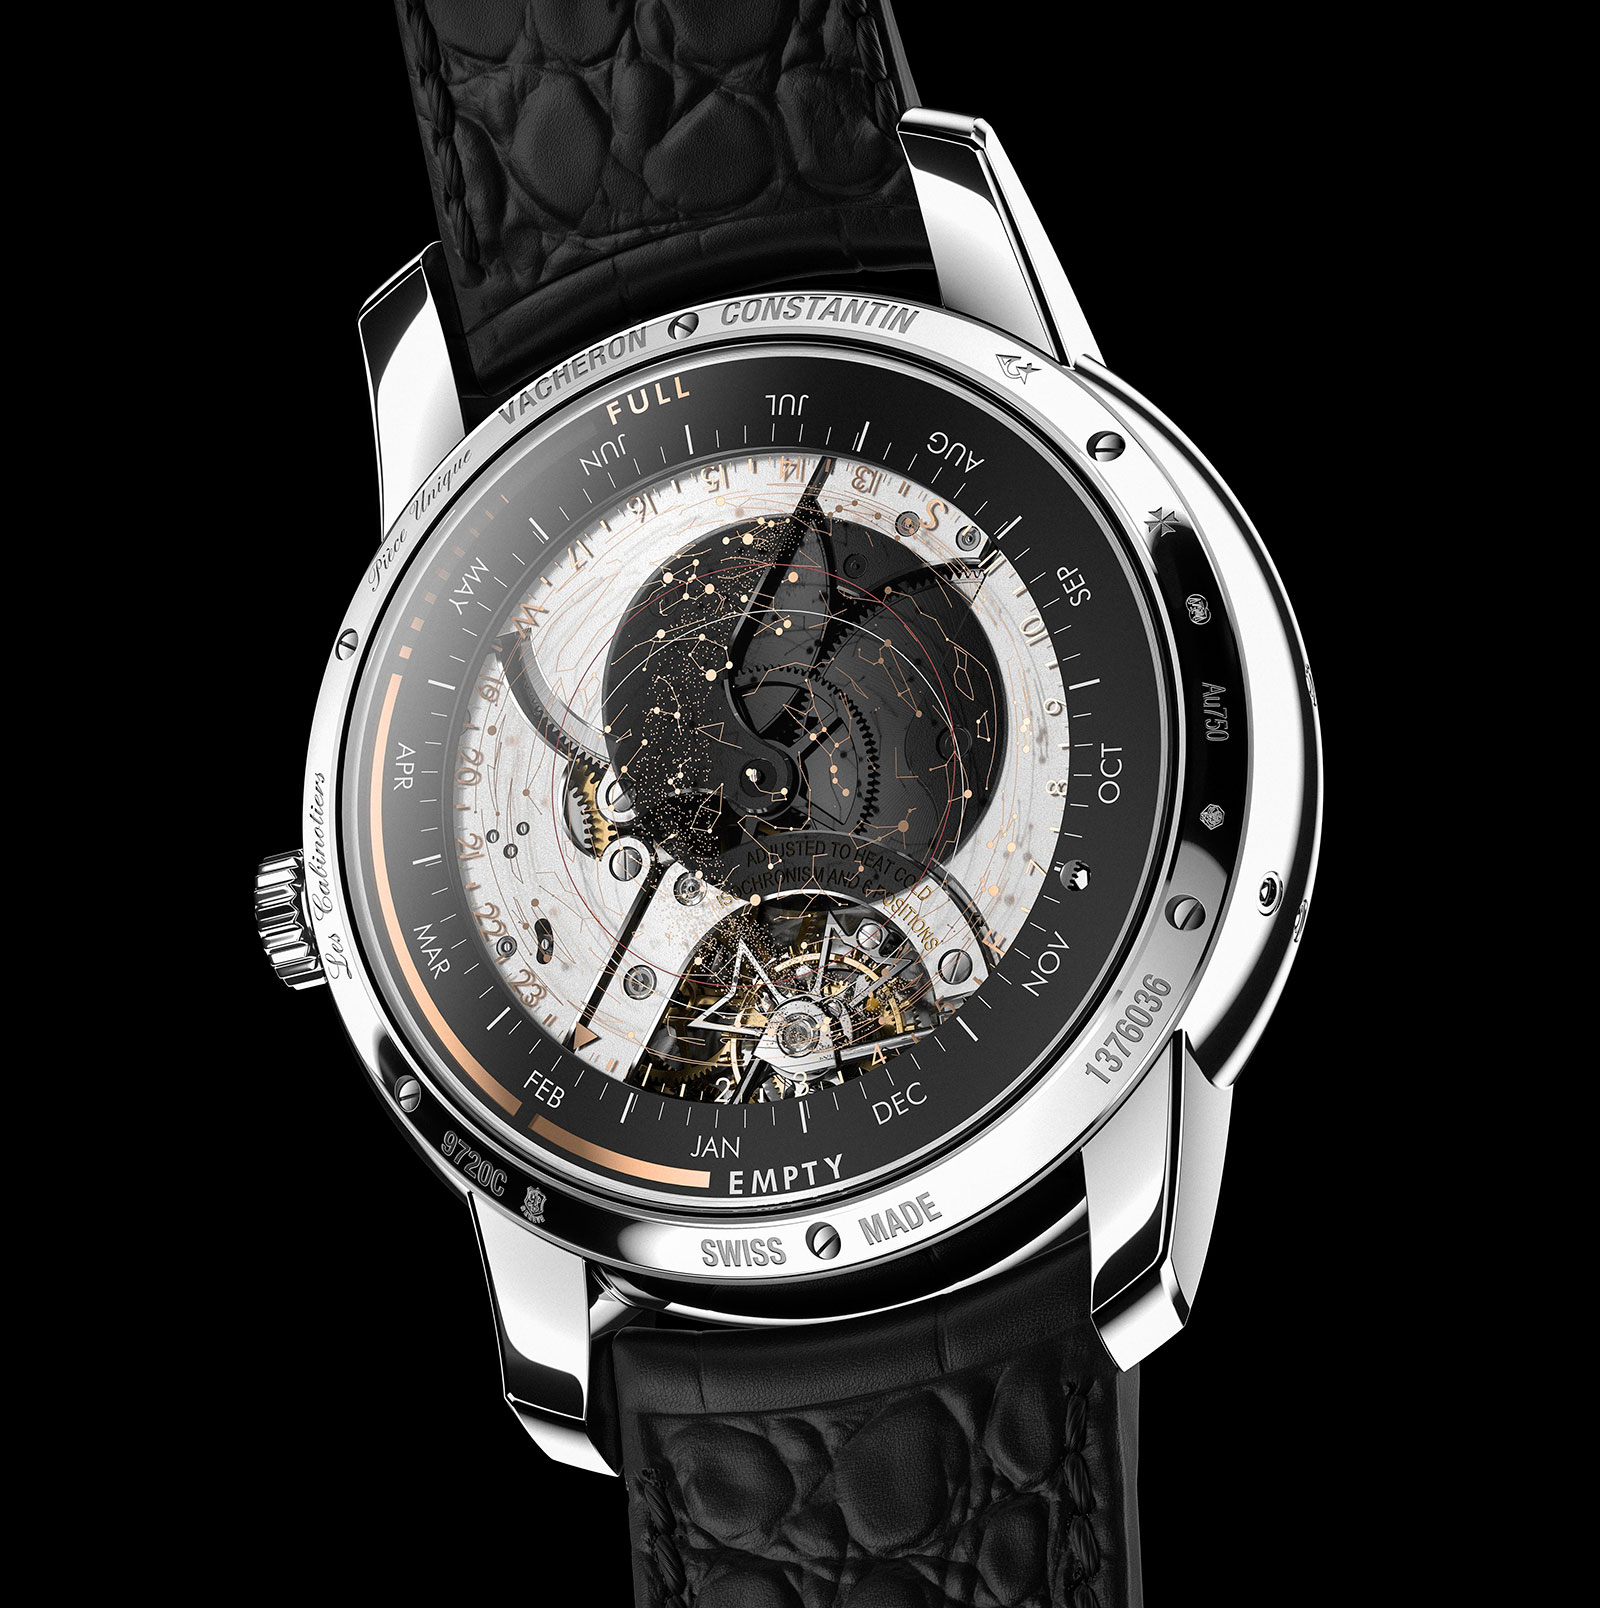 Vacheron-Constantin-Celestia-Astronomical-Grand-Complication-3600-1.jpg